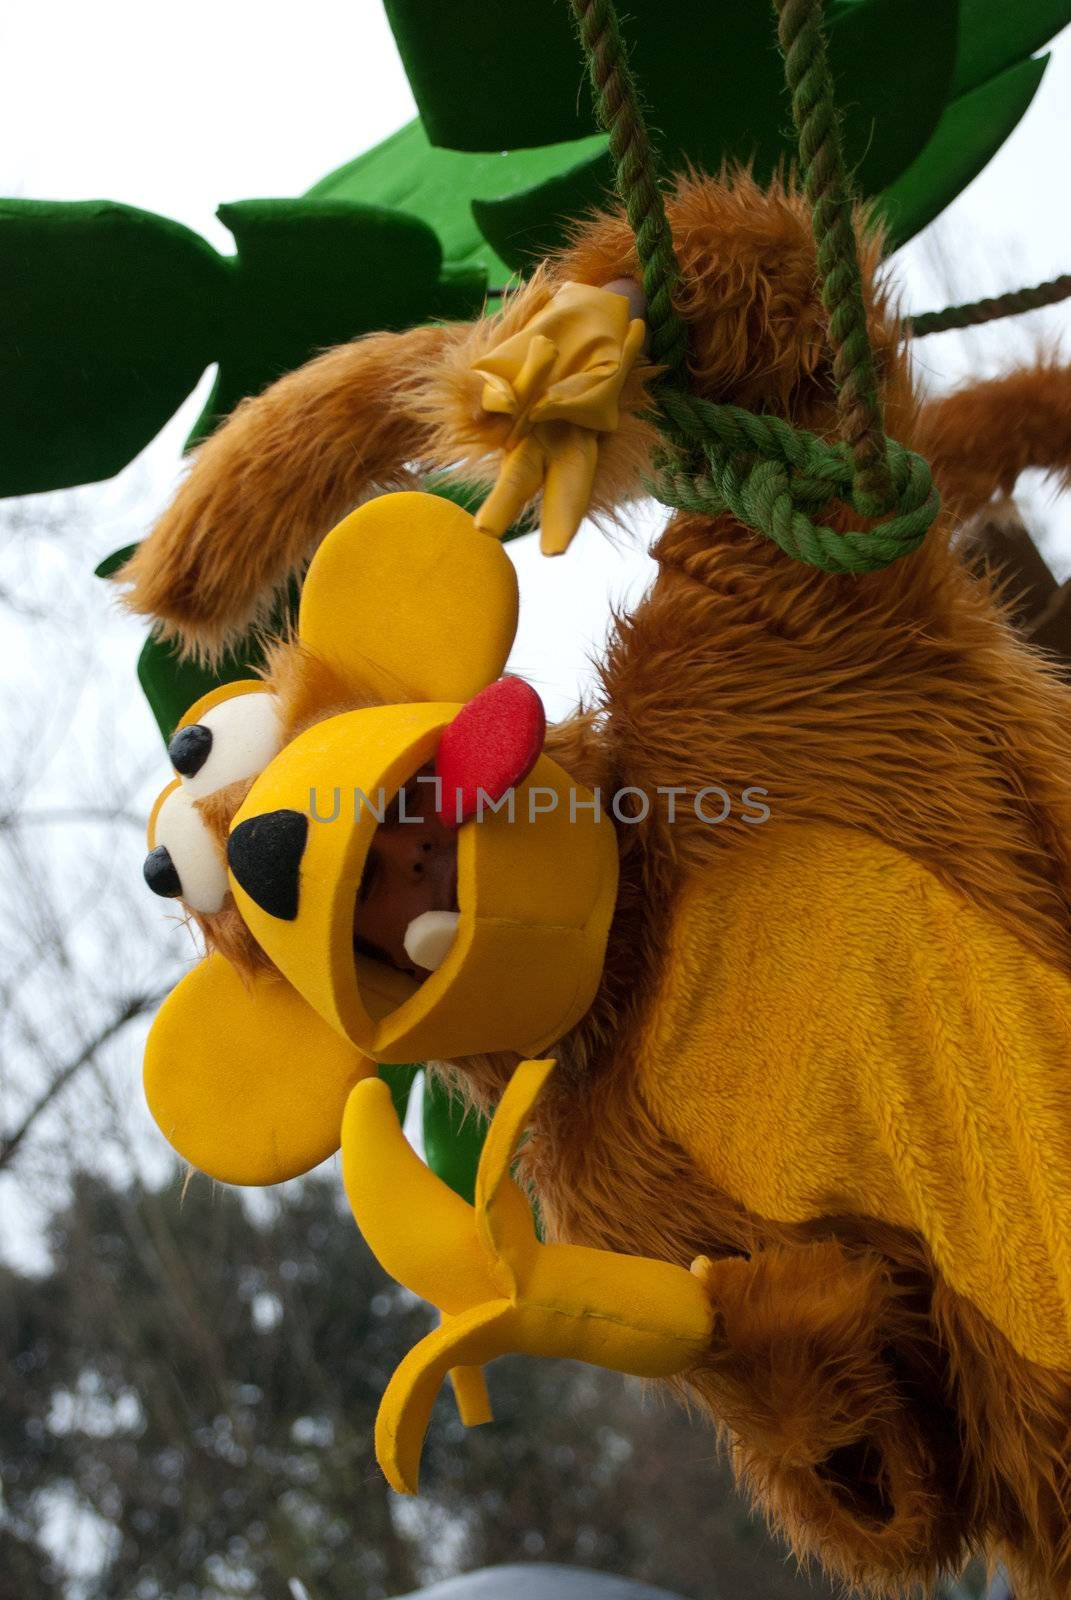 OVAR, PORTUGAL - MARCH 8: Group 'Marroquinos'  during the Carnival Parade on March 8, 2011 in Ovar, Portugal.